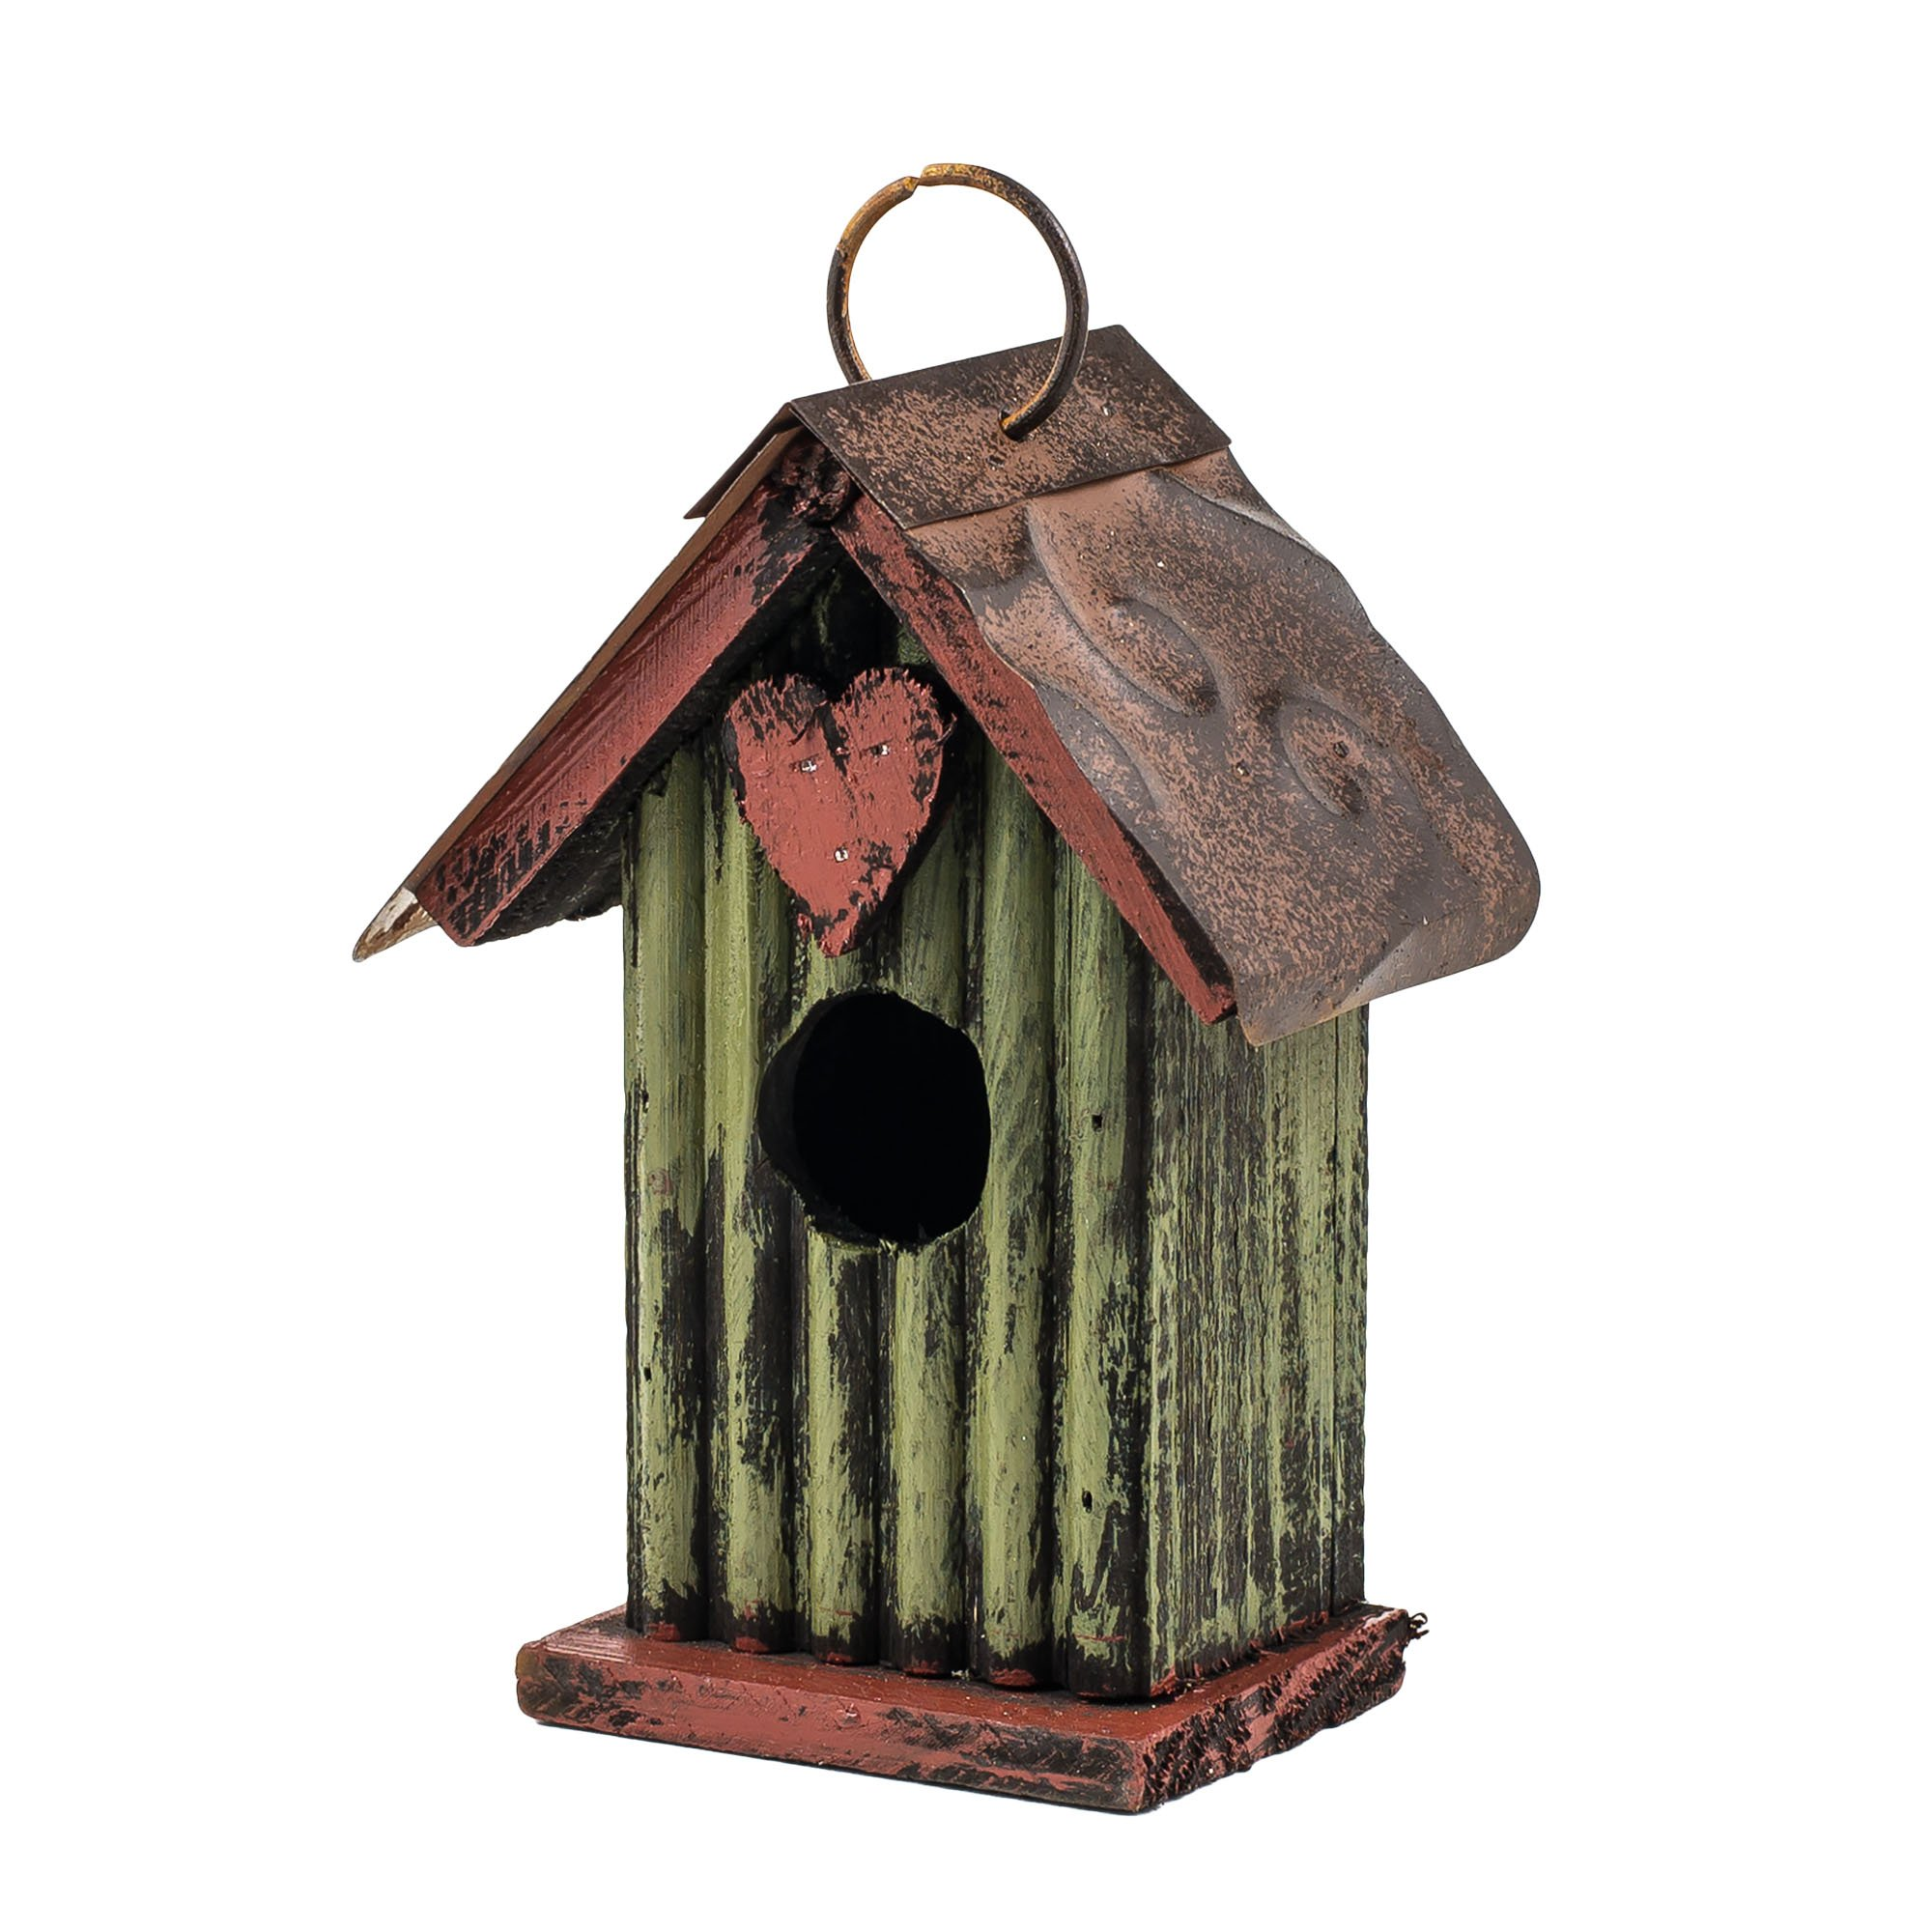 6.5'' Green with Heart Hanging Rustic Style Birdhouse